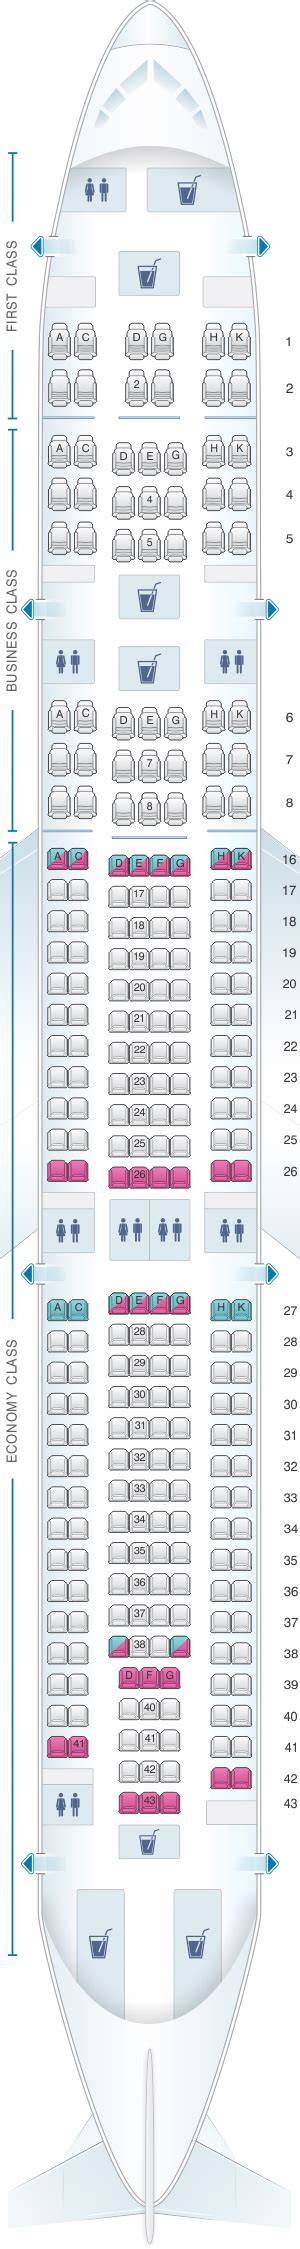 airbus a340 300 stoelindeling seat map hi fly airbus a340 300 tqy tqz 267pax seatmaestro